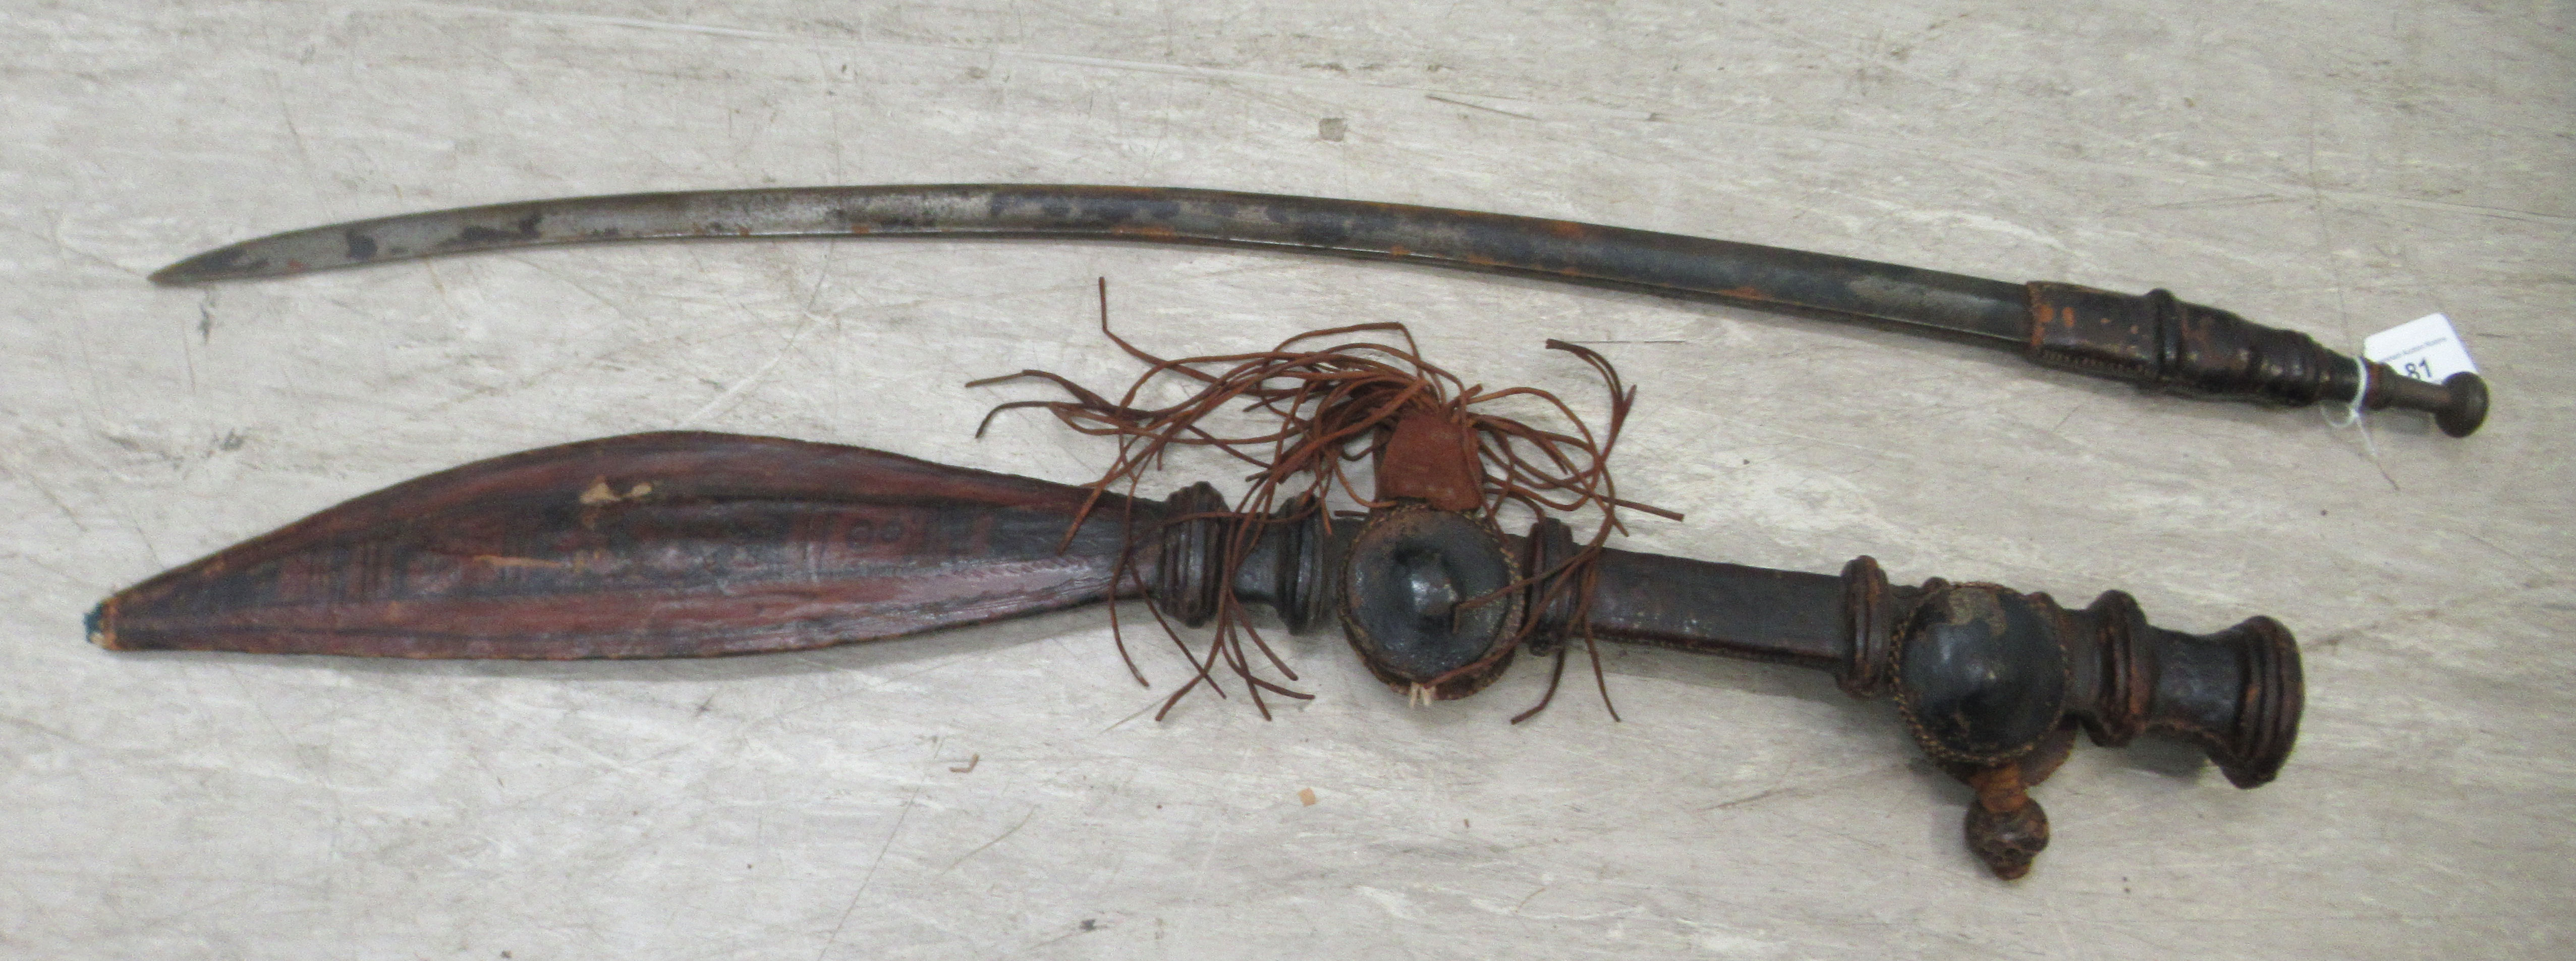 A late 19thC Islamic Tuareg Mandingo sword with a brown hide handle and decorative scabbard the - Image 2 of 6